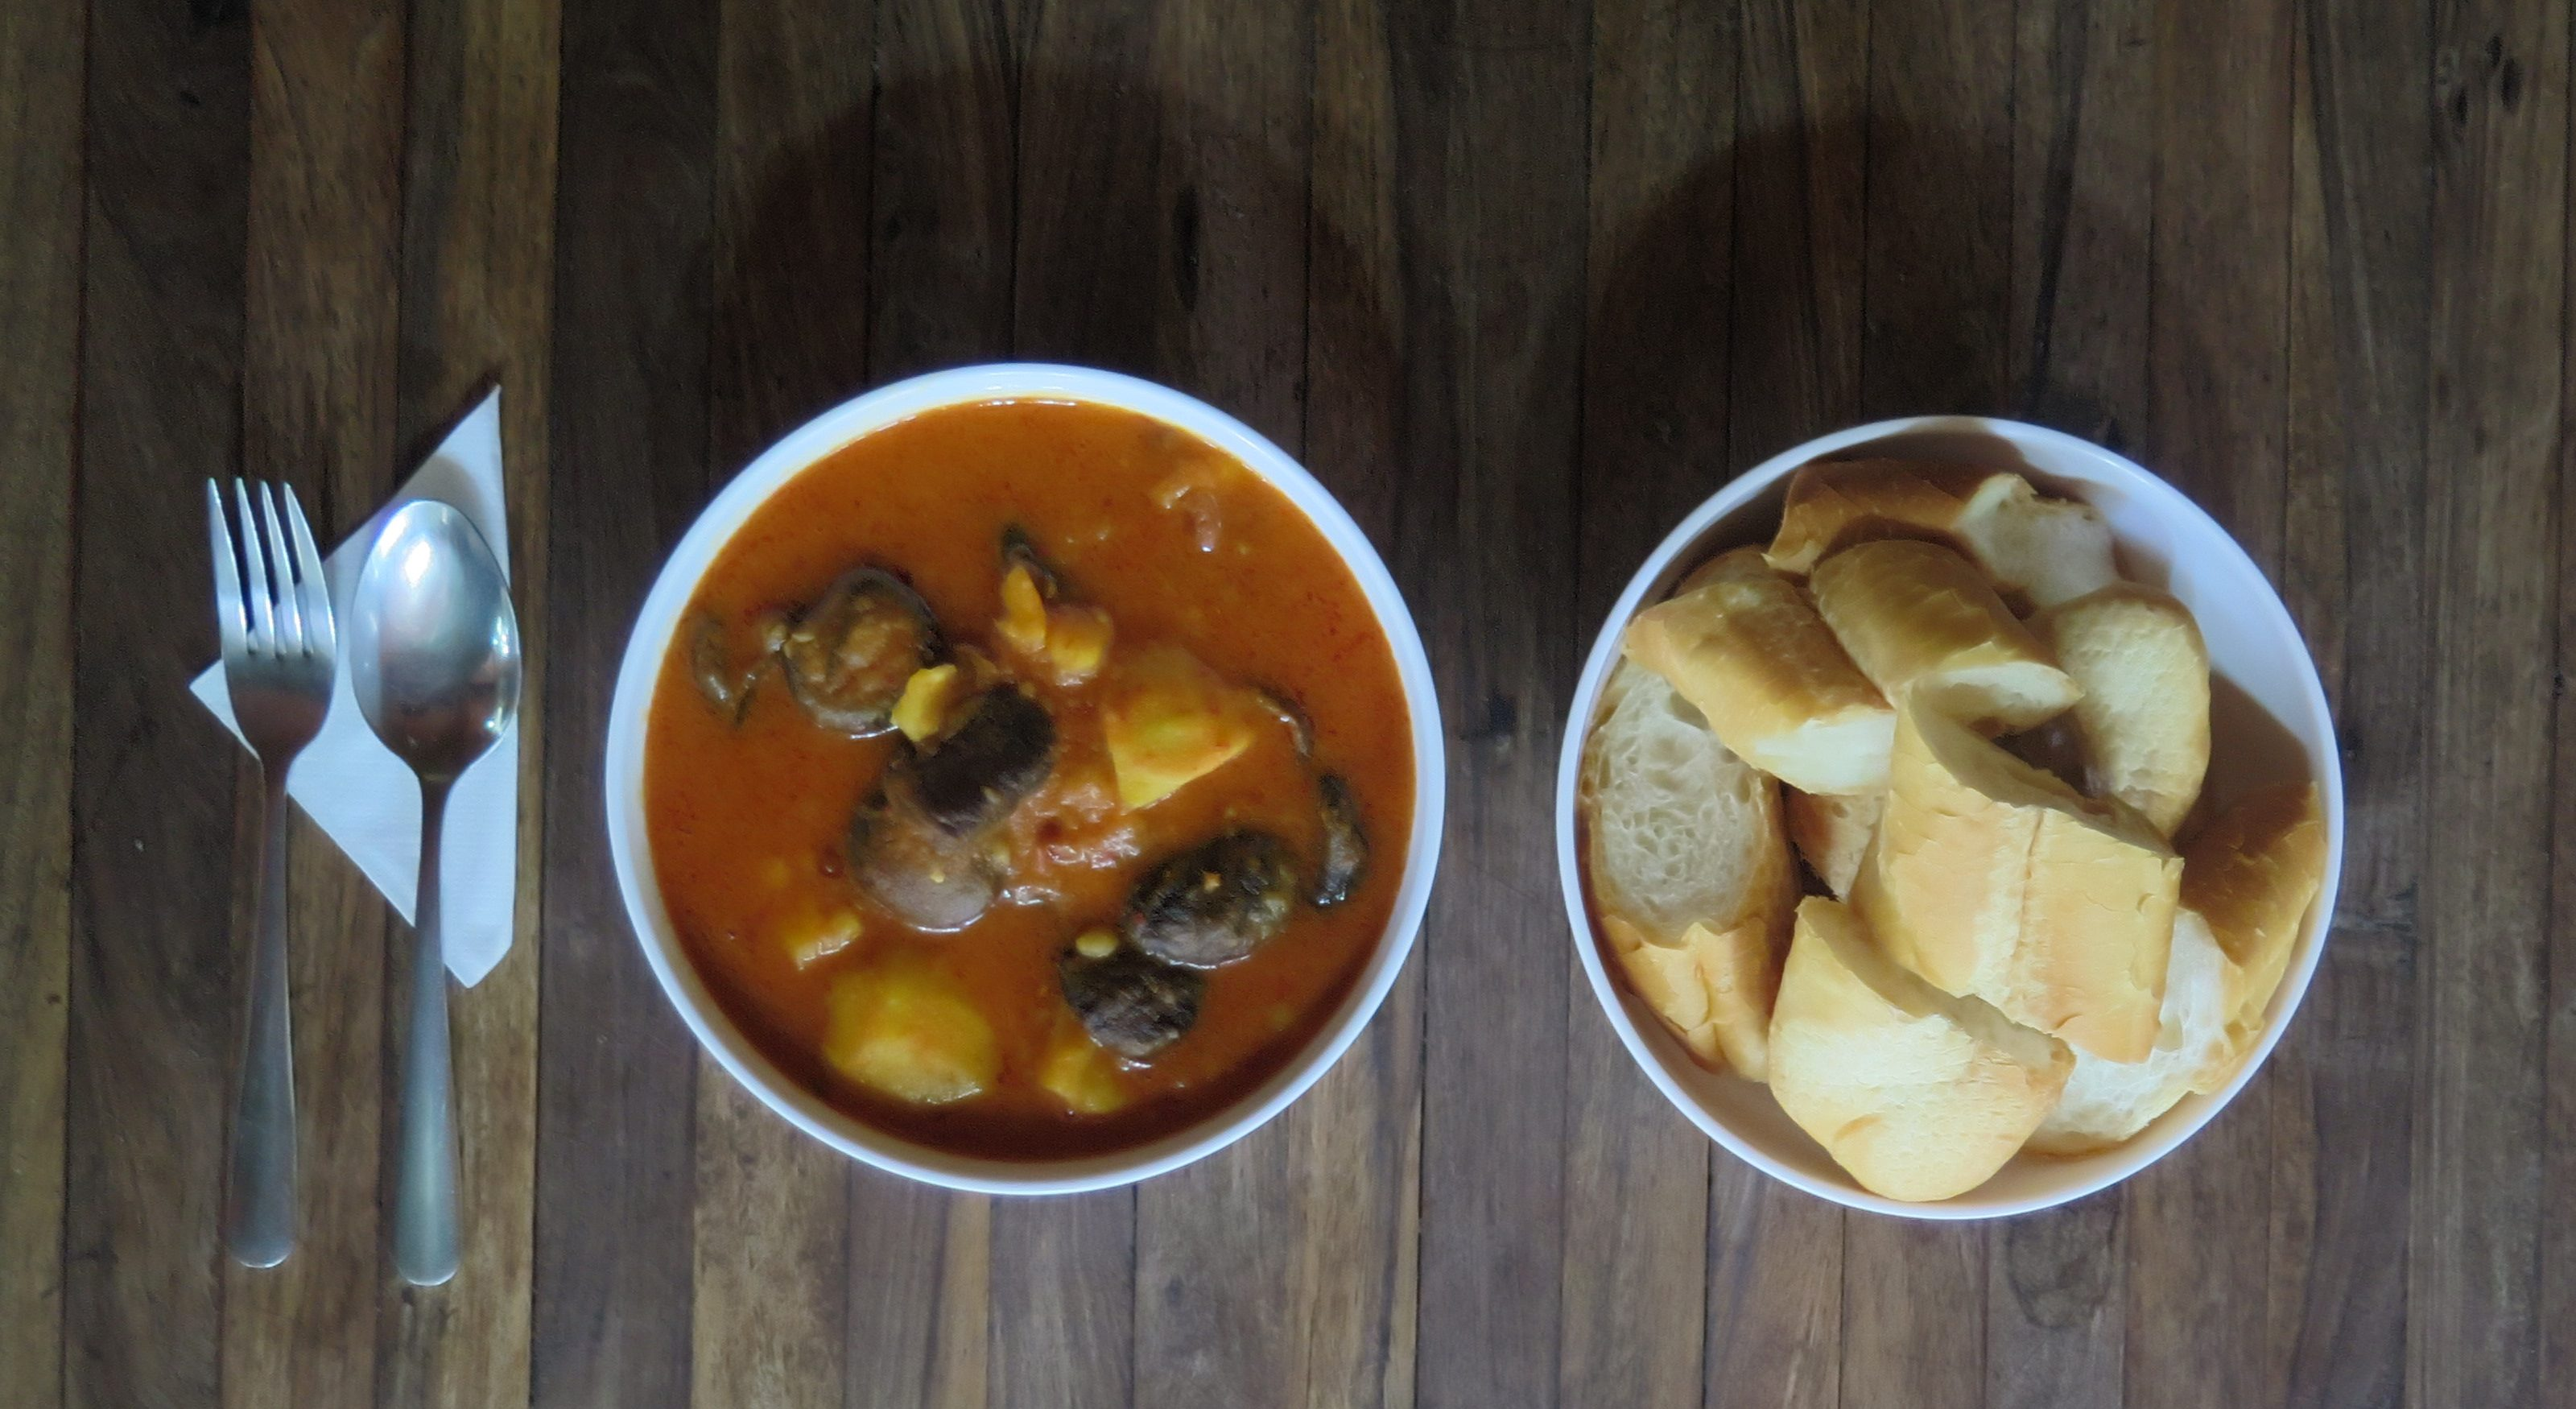 khmer curry single serving